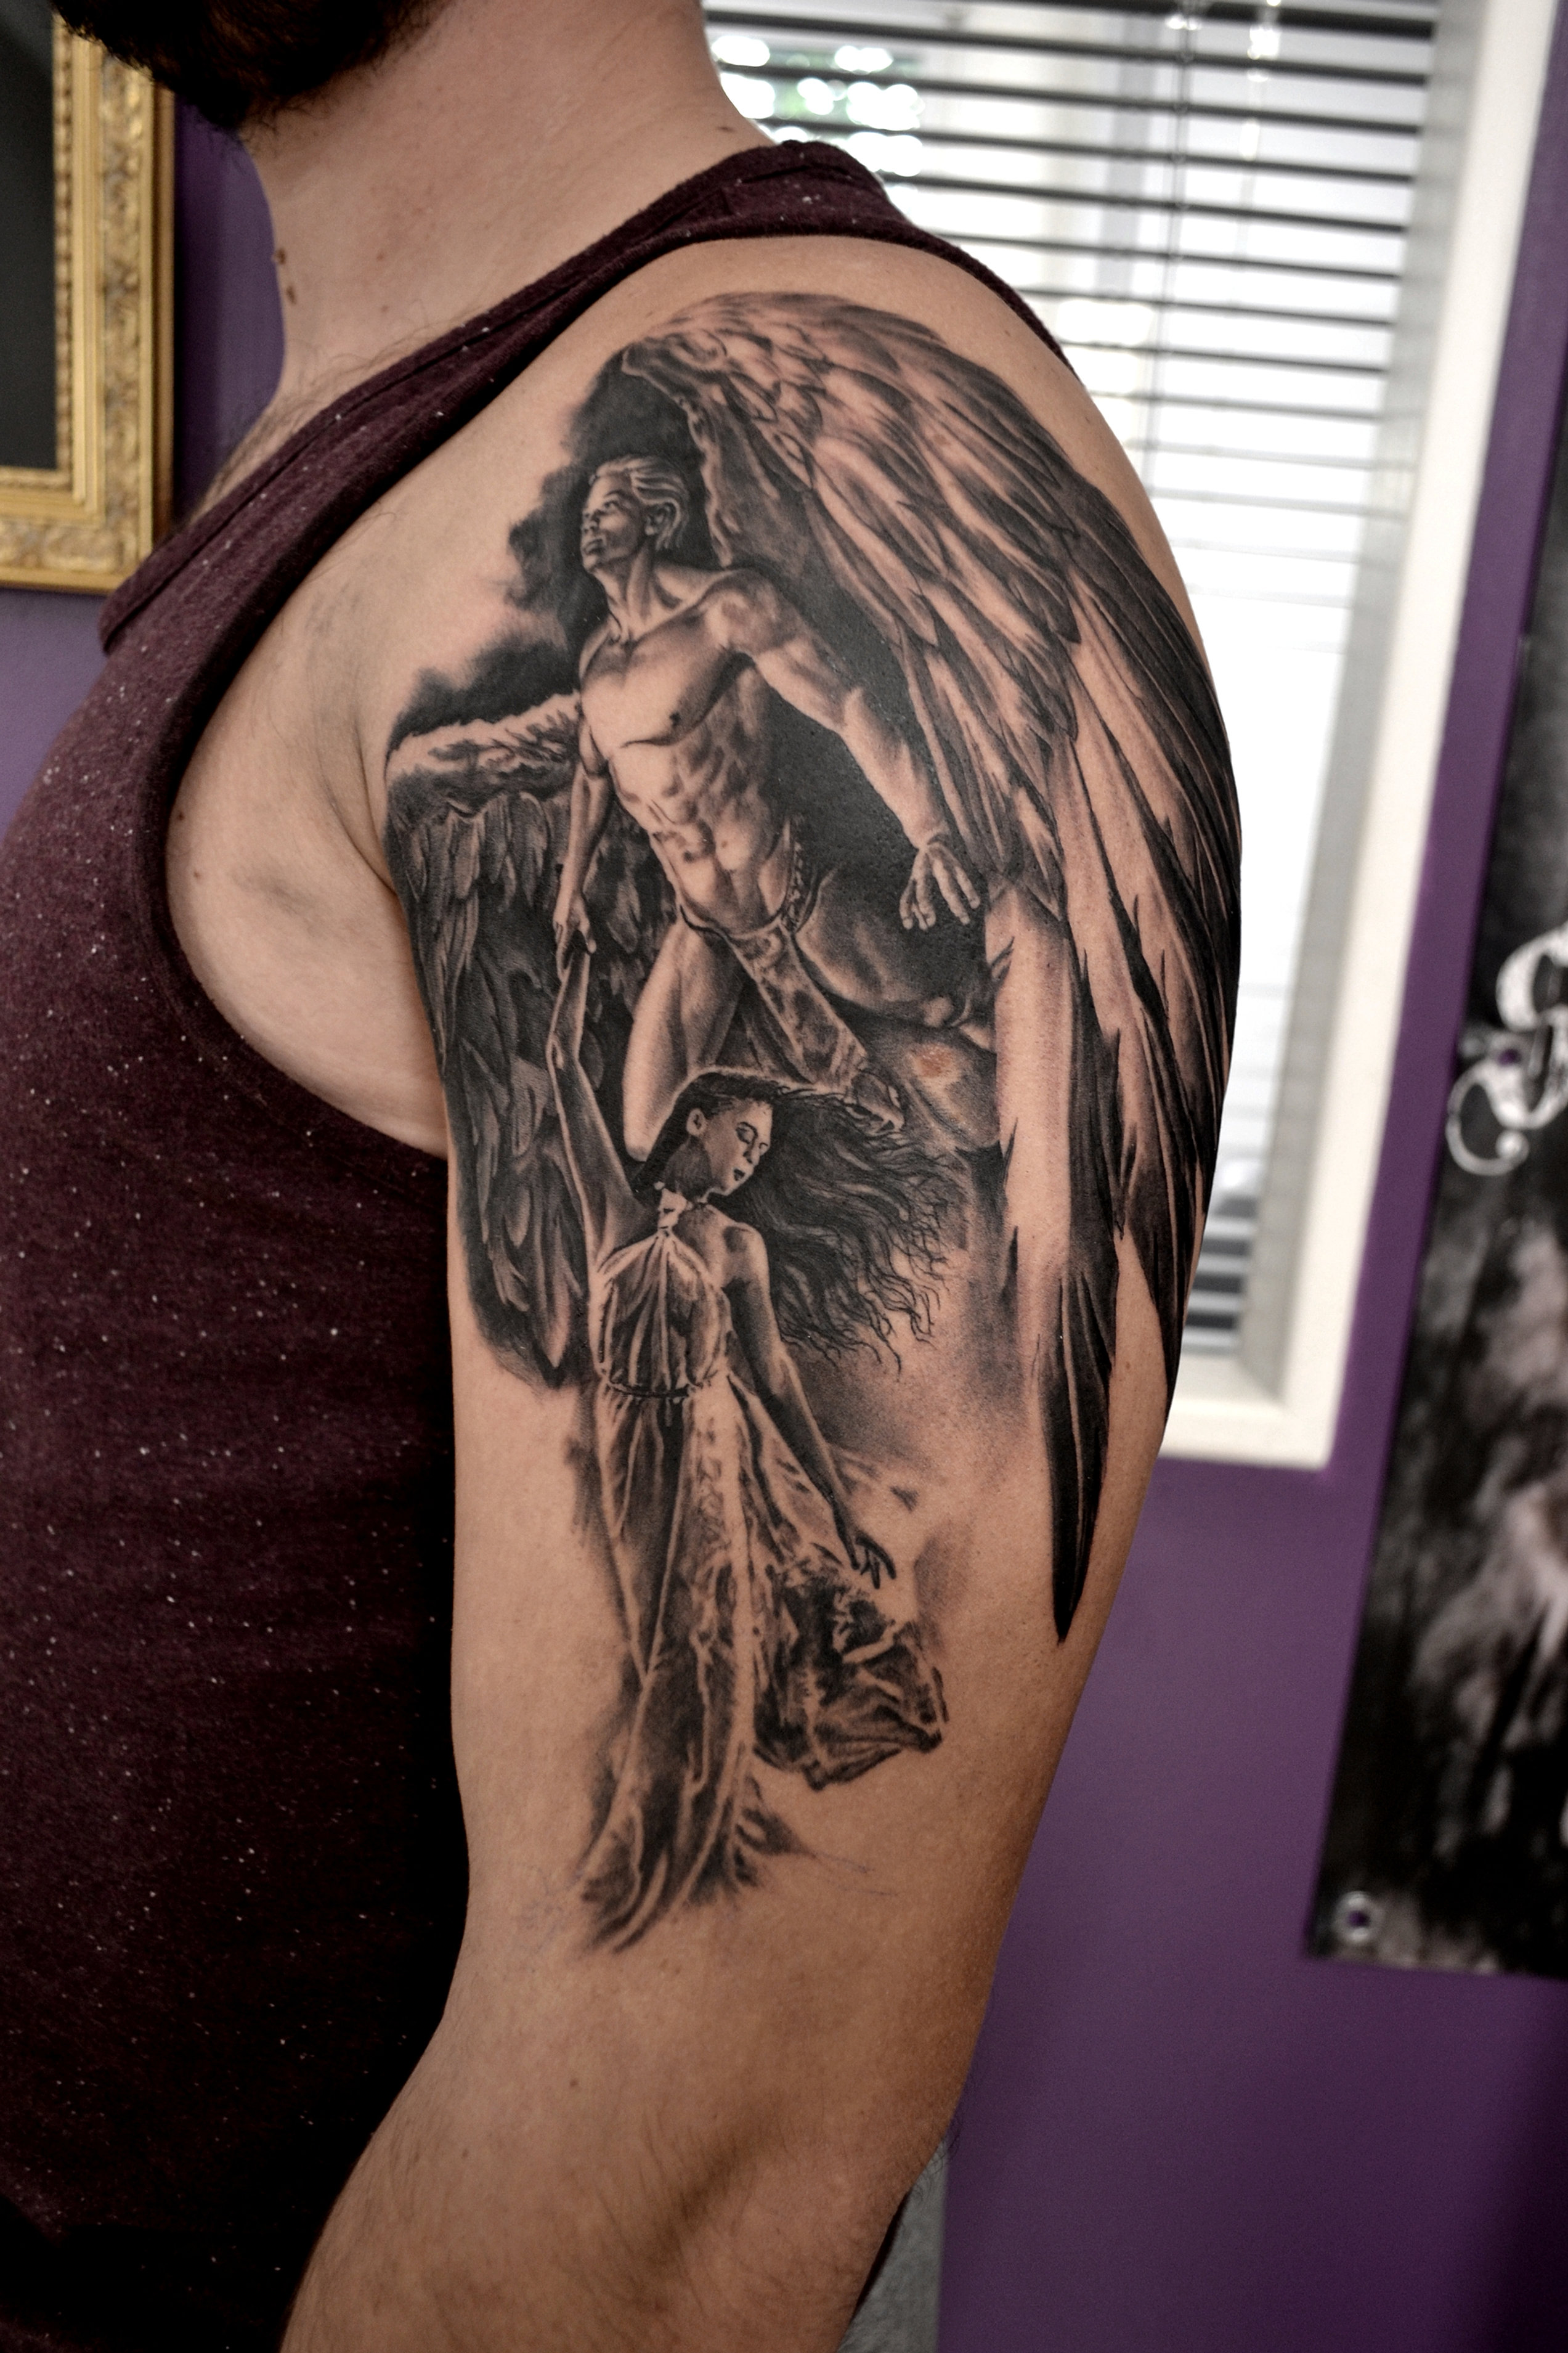 Angelot tatouage galerie tatouage - Tatouage femme ange ...